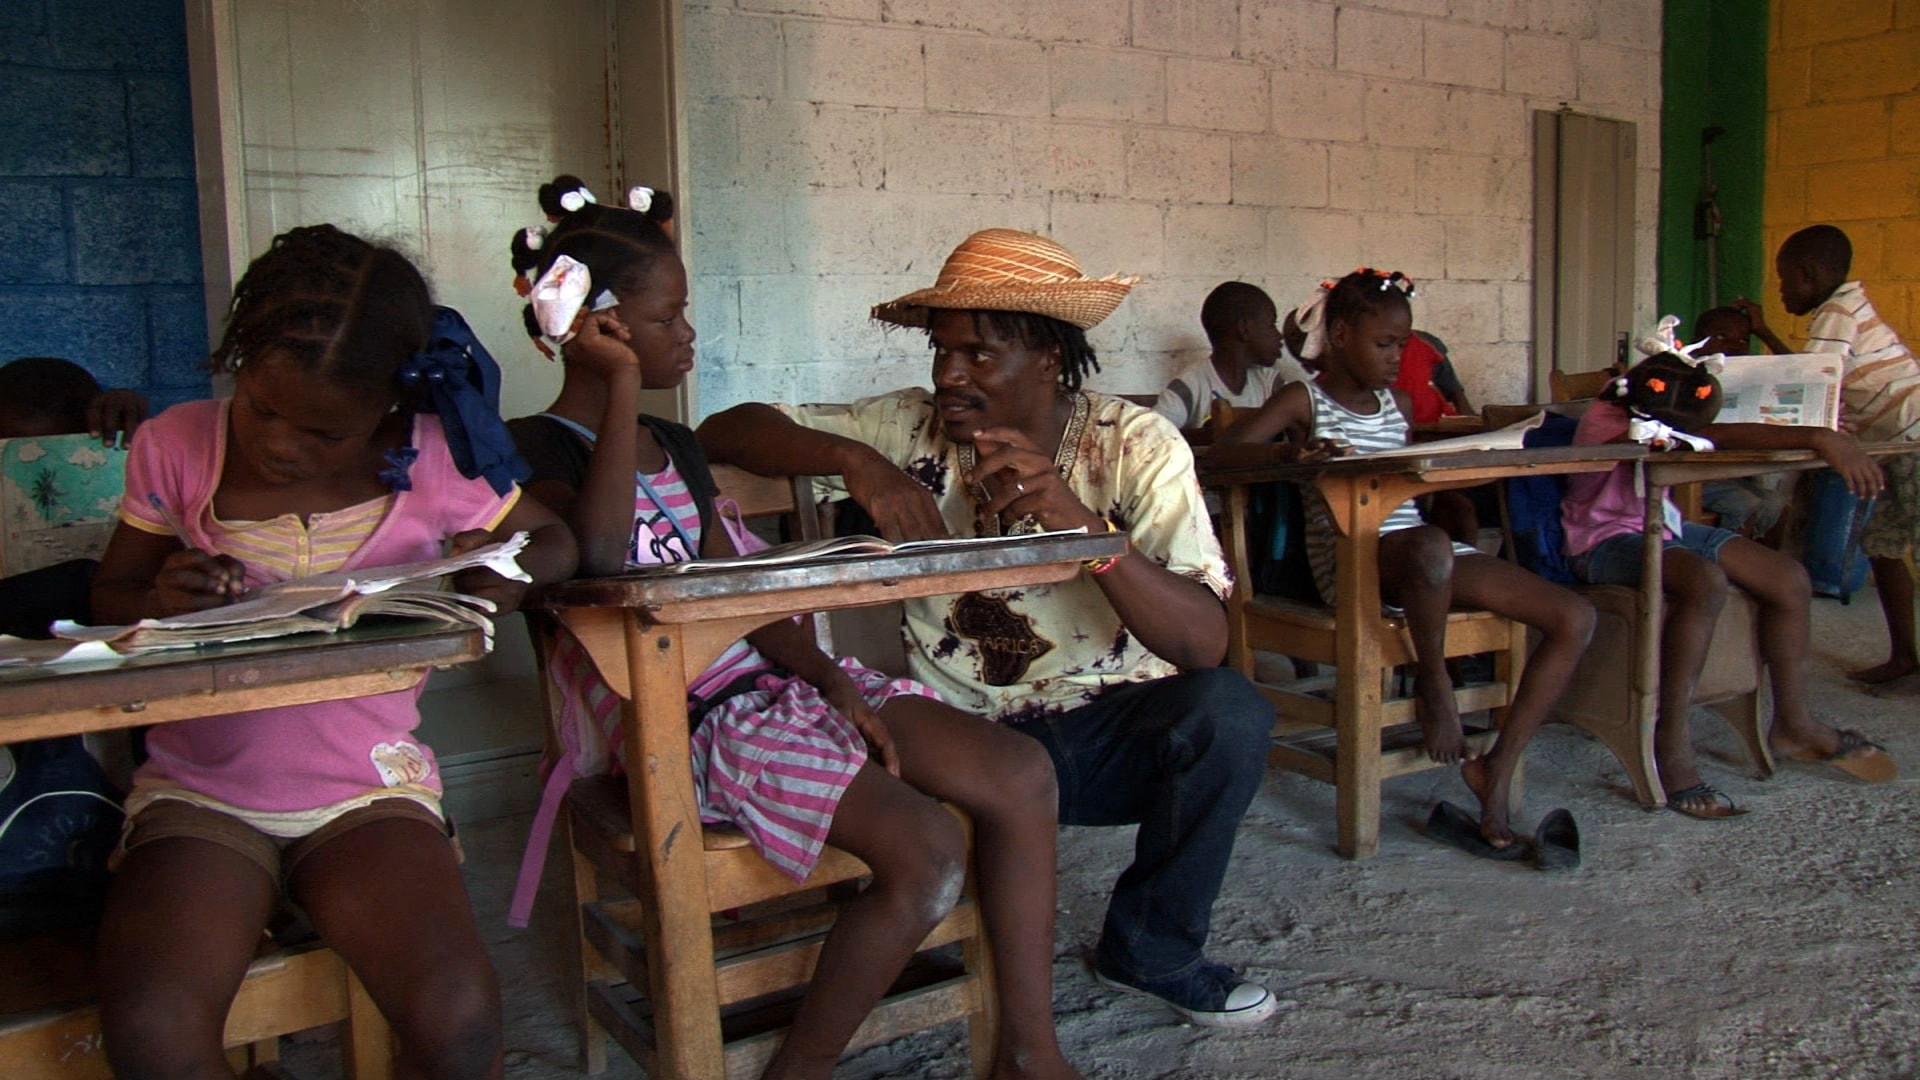 Owning Our Future: Haitian Perspectives in Film - A collection of ten Haitian-made films that provide a unique opportunity to experience Haiti as it is lived by street vendors, business women, artists, farmers and more.